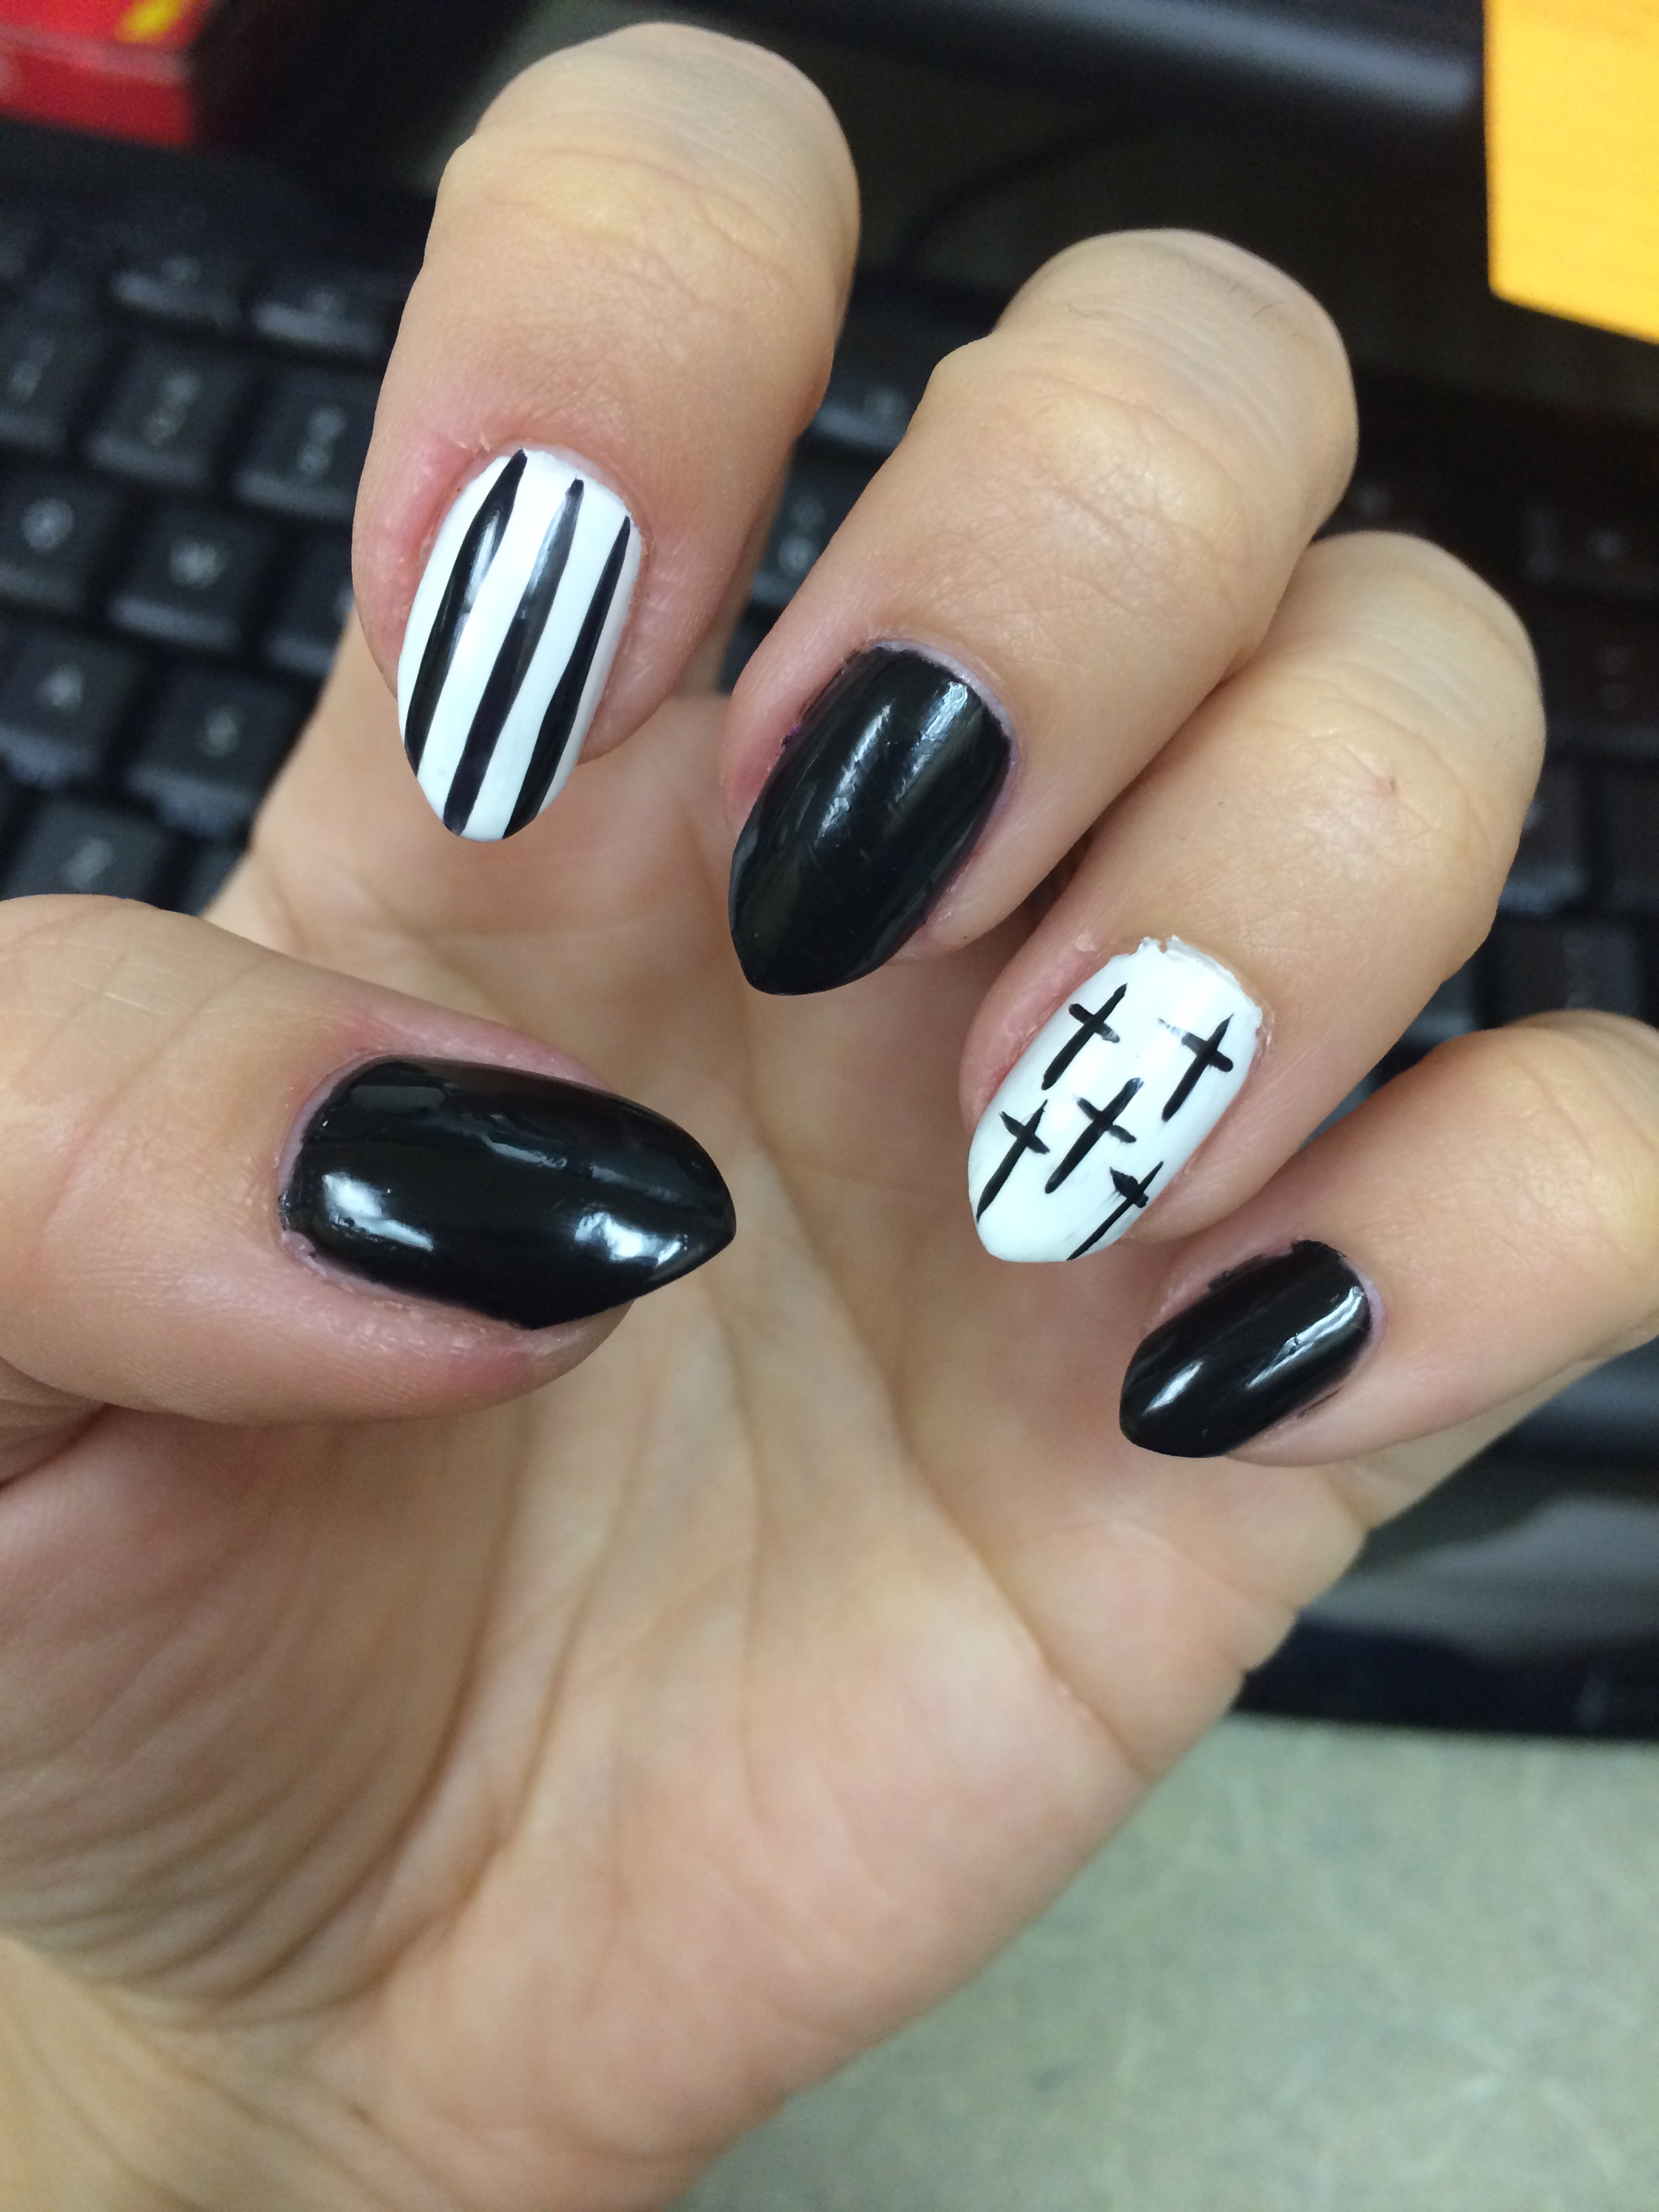 Cute Cross Nail Art The Best Inspiration For Design And Color Of